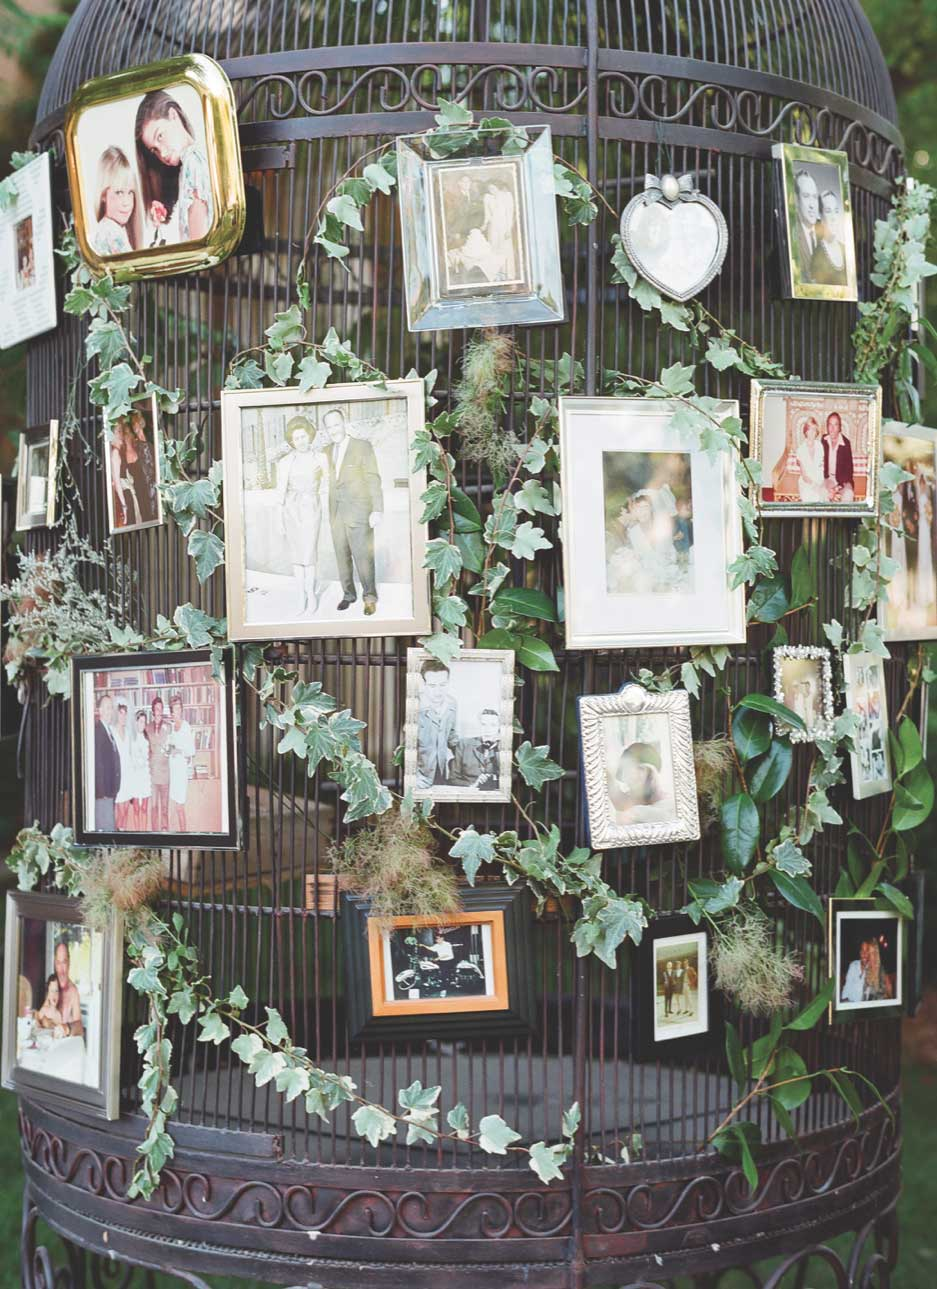 Large bird cage with framed family photos at wedding ceremony reception outdoors alfresco